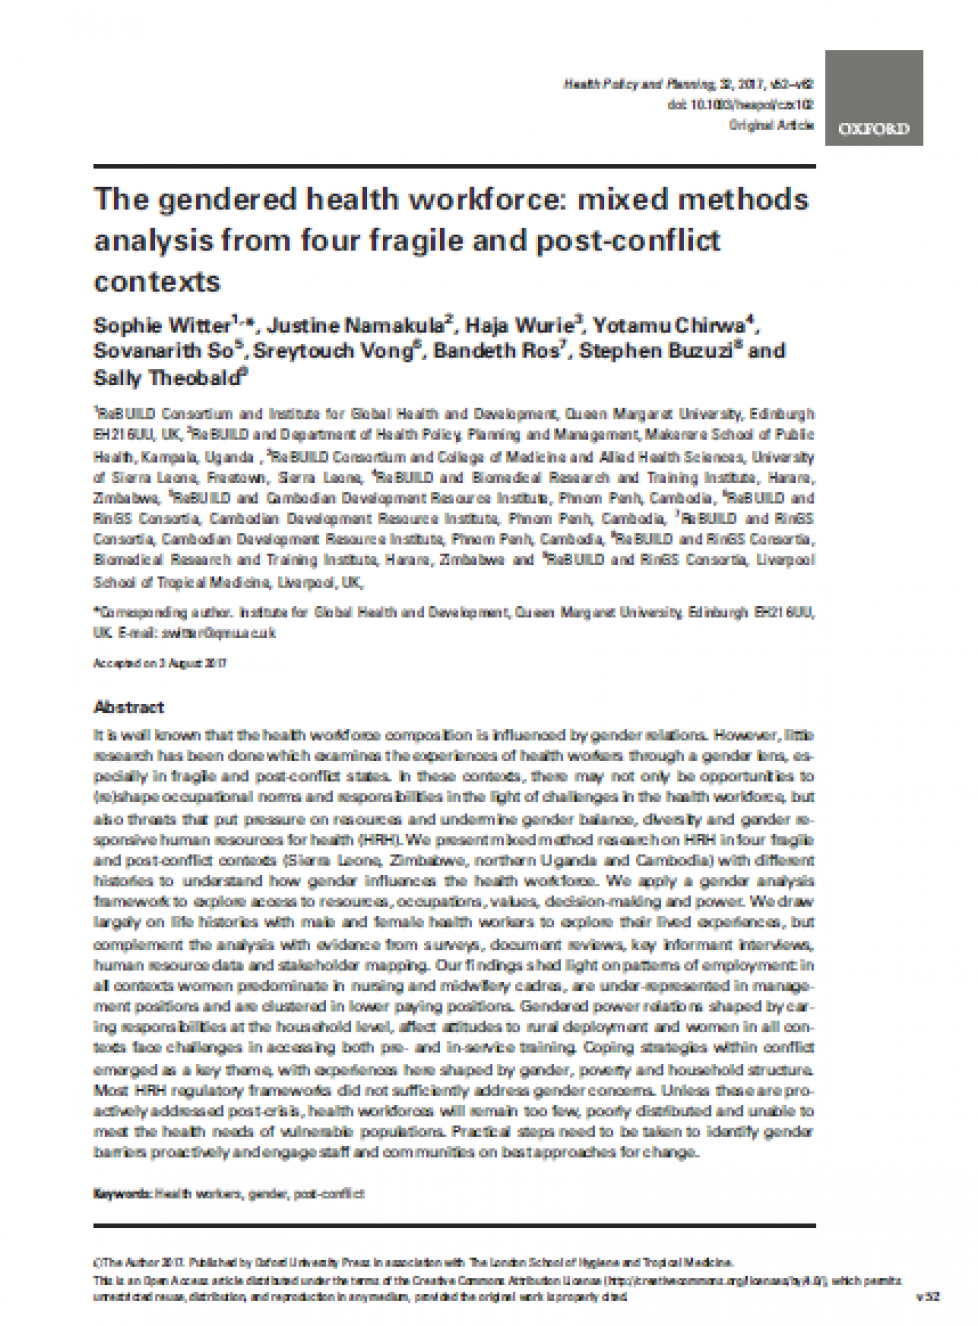 Cover of the paper on the gendered health workforce in fragile and conflict affected settings